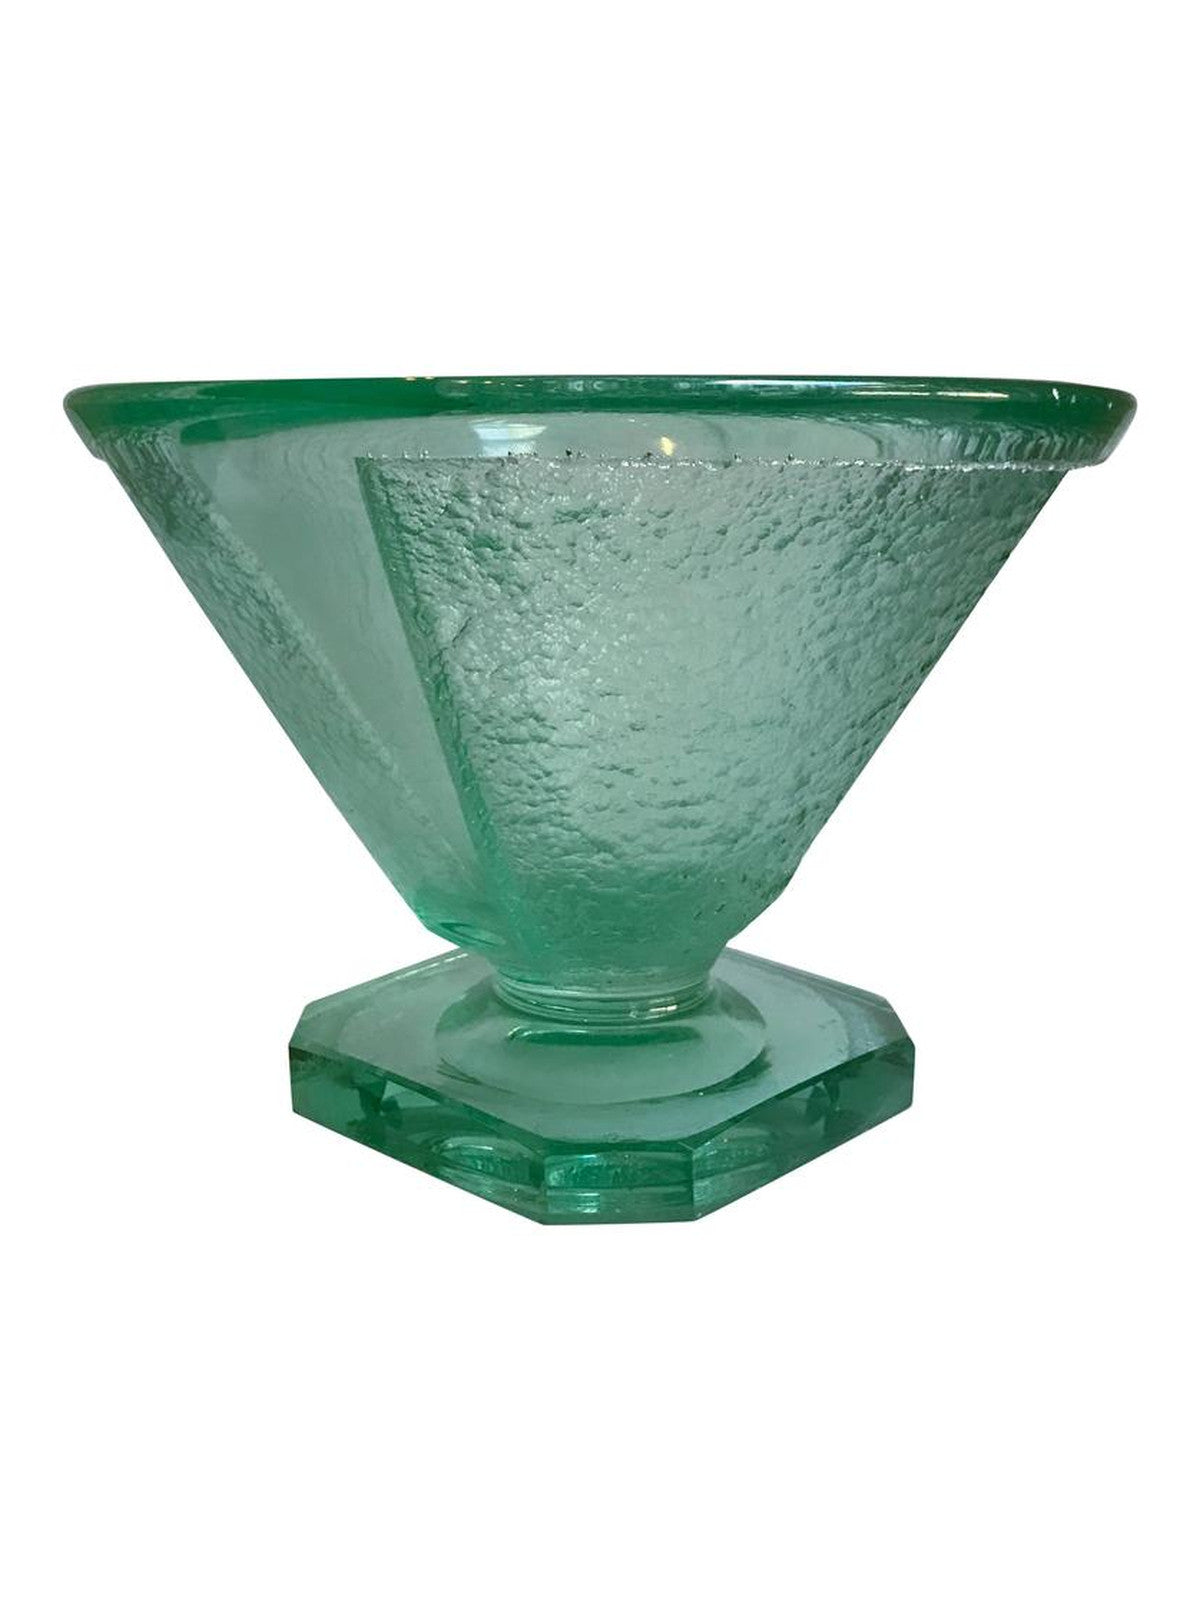 Green Bowl Attributed to Daum